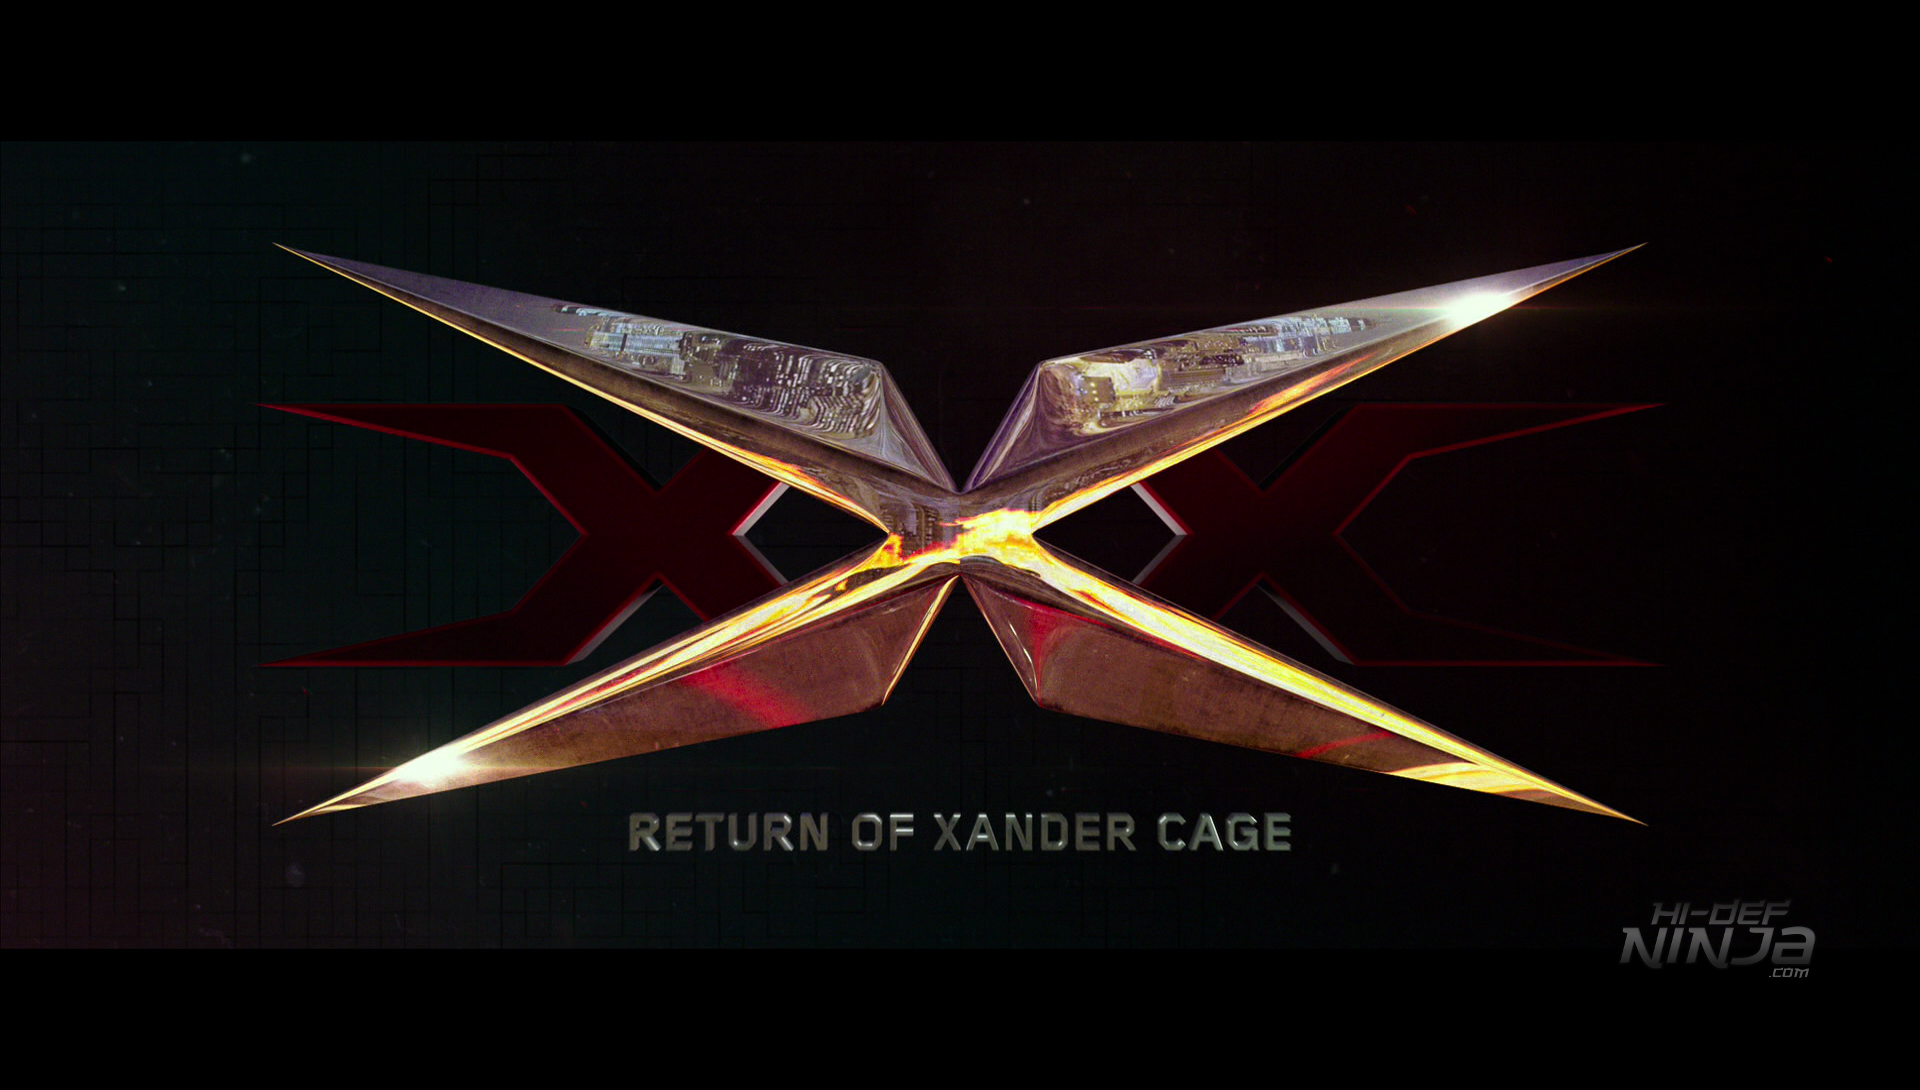 xXx-Return-of-Xander-Cage-HiDefNinja (1)